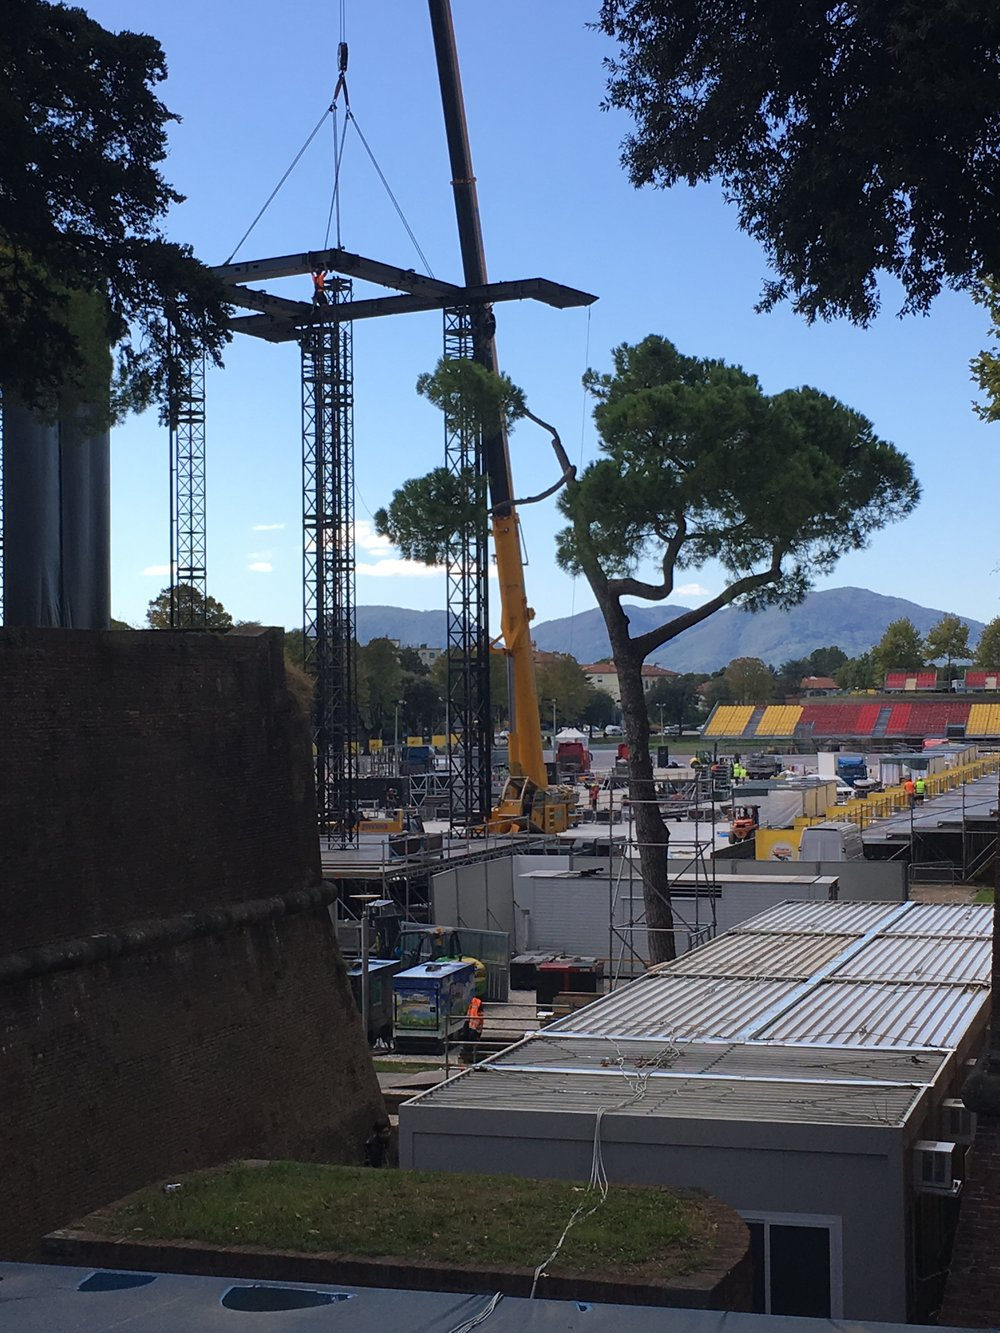 Construction of the stage and seating areas.  Most concert-goers will stand on the grassy field beyond the city walls.